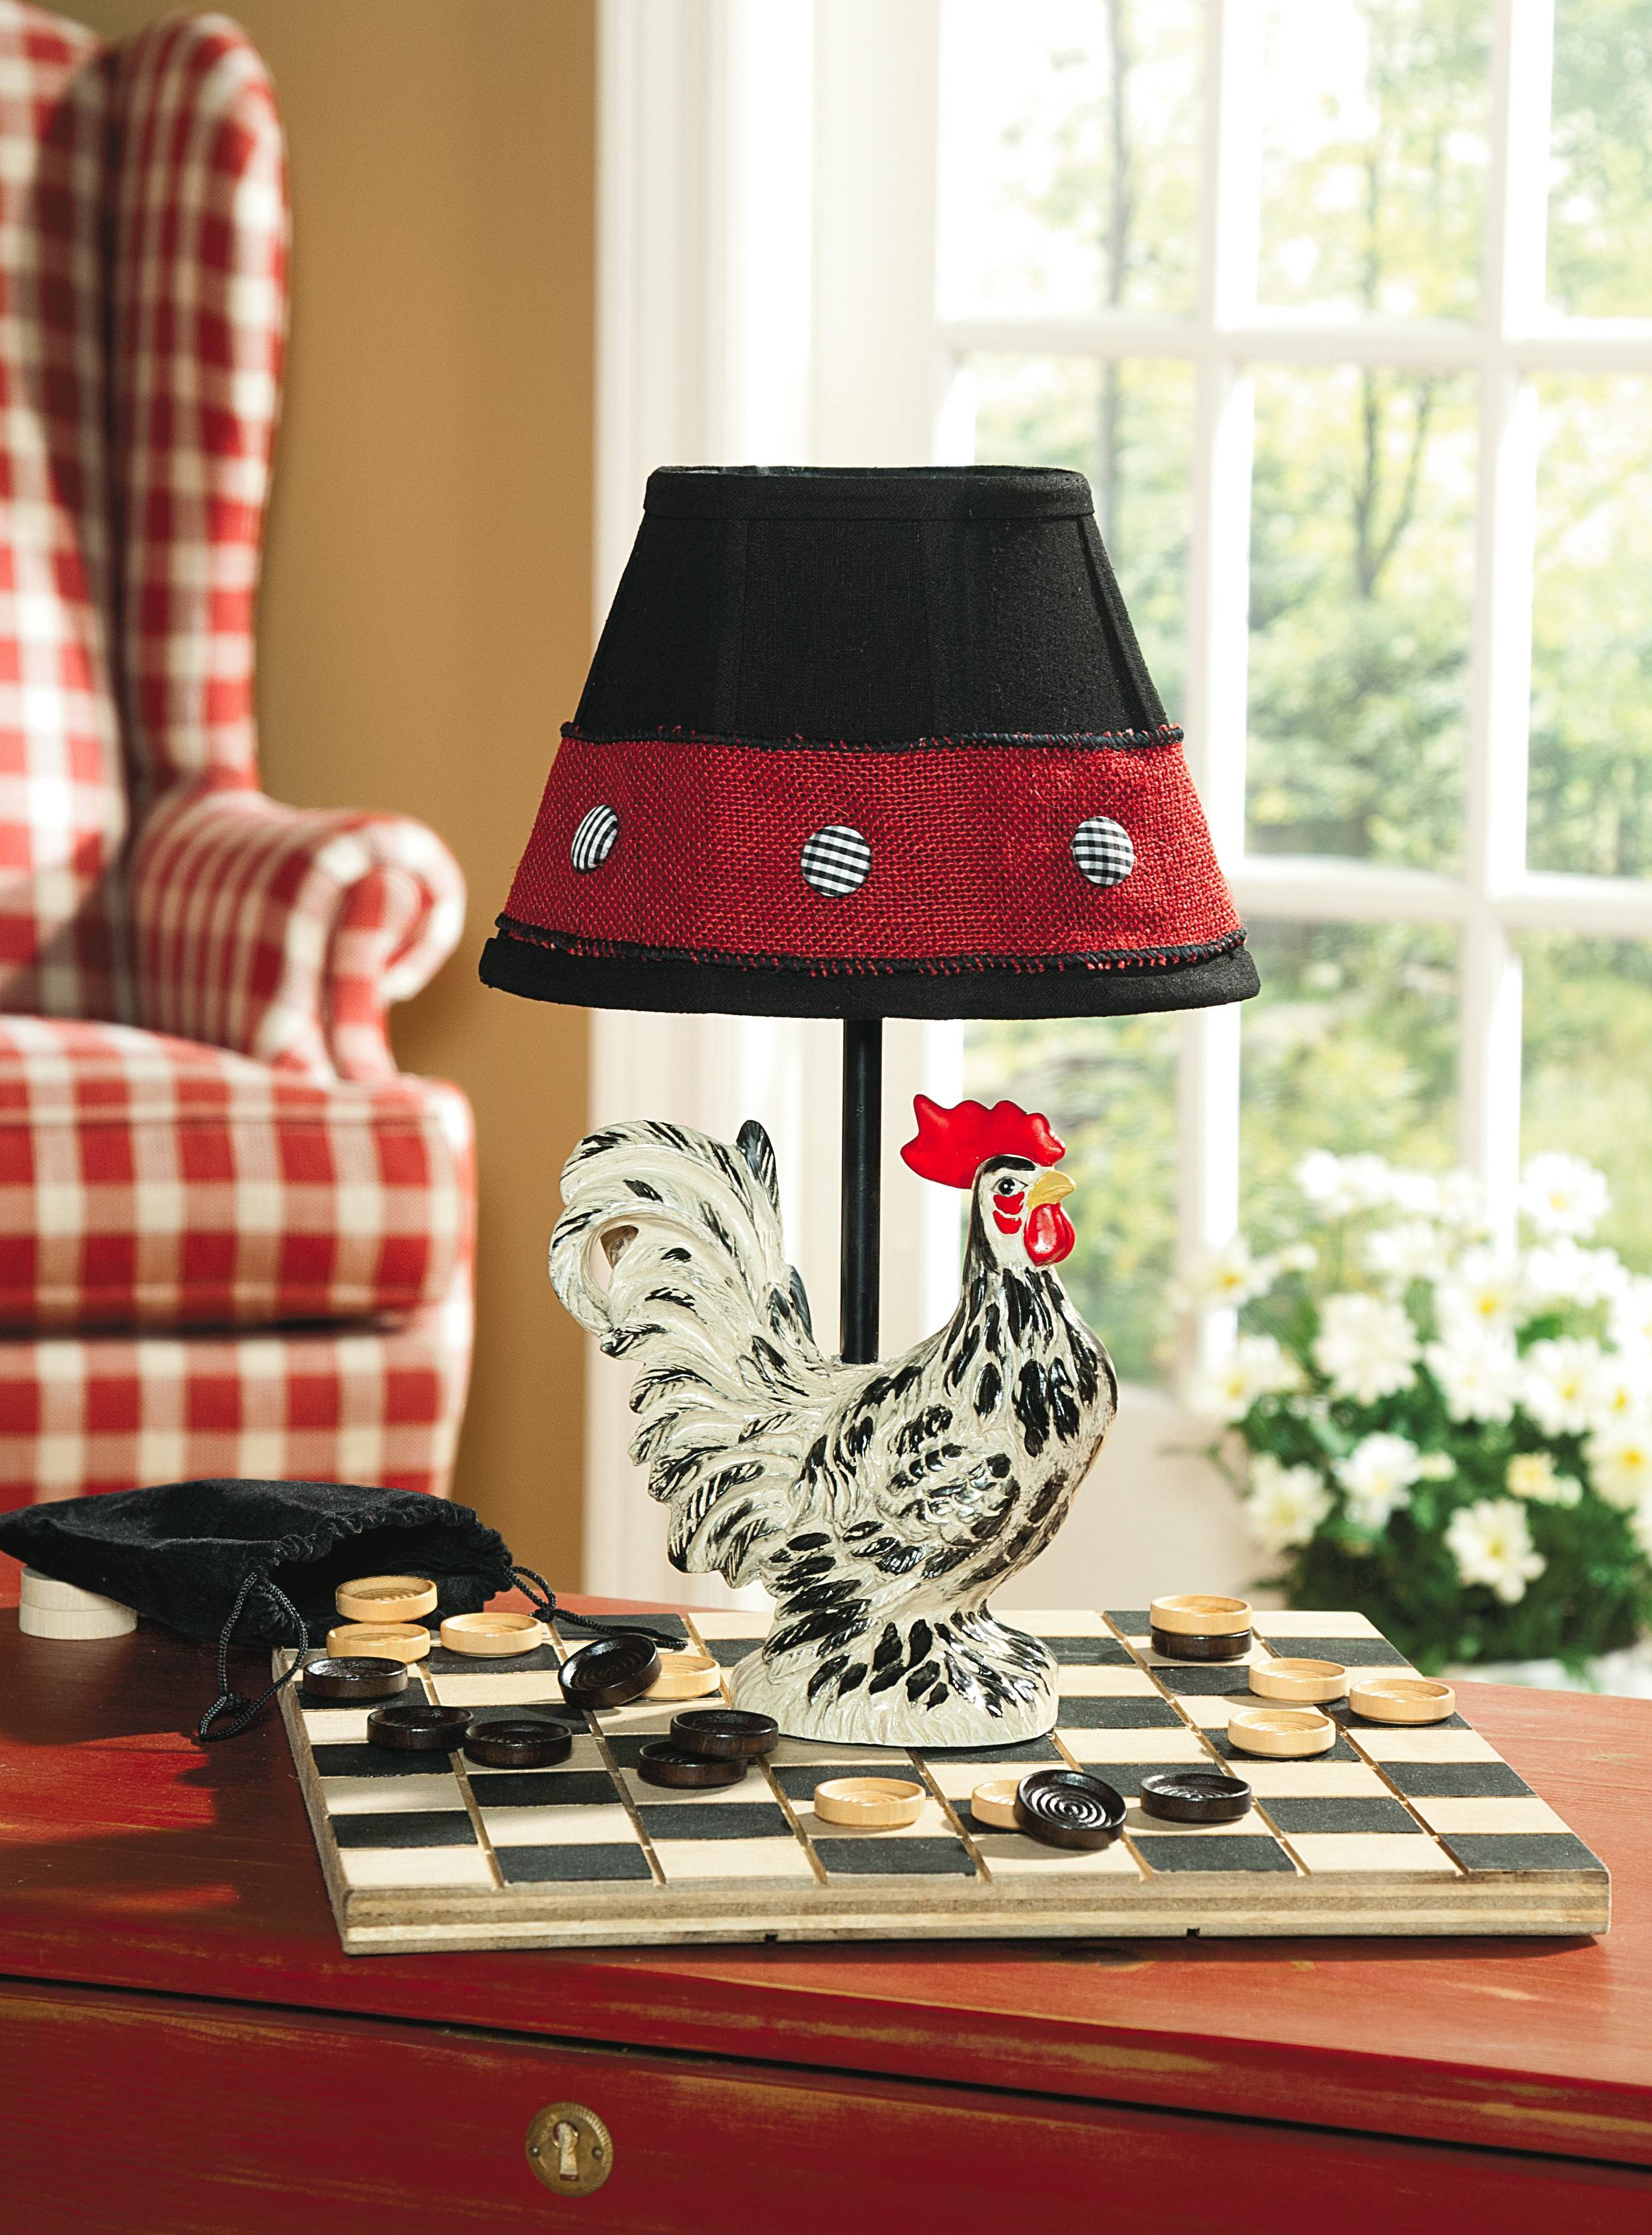 Repeat a room's palette anywhere you think it works -- for instance, this chicken lamp continues the black, red and white color scheme found on the porch and in the entryway.